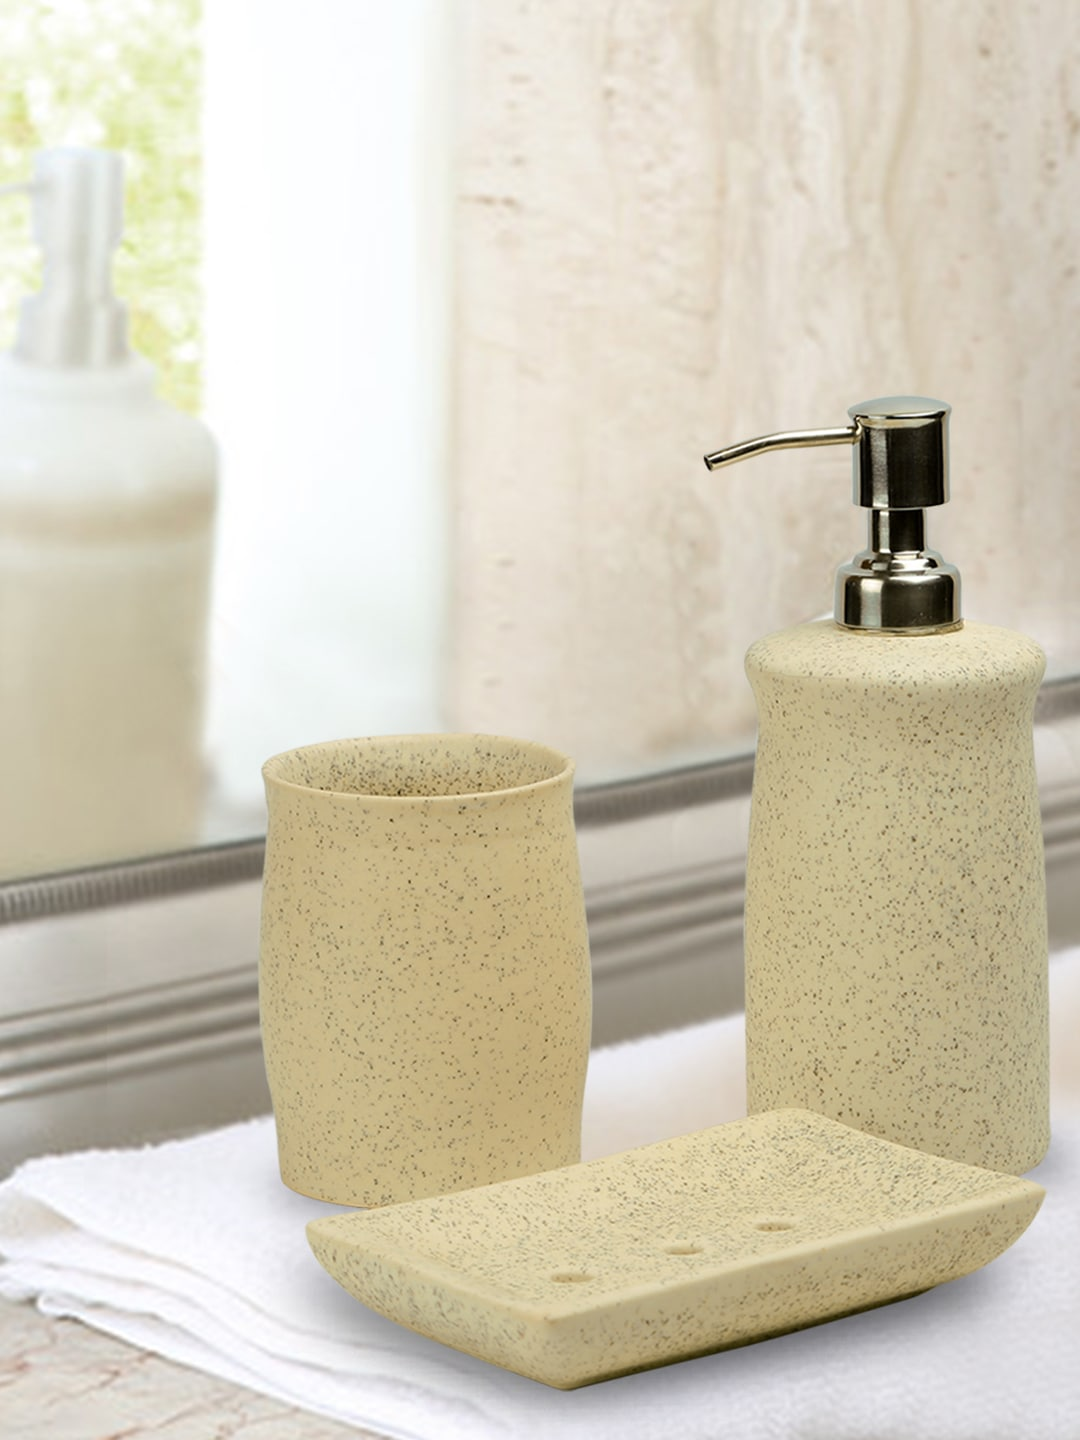 Bathroom Dispenser Set Exclusivelane Elegant Set Of 3 Off White Ceramic Bathroom Accessory